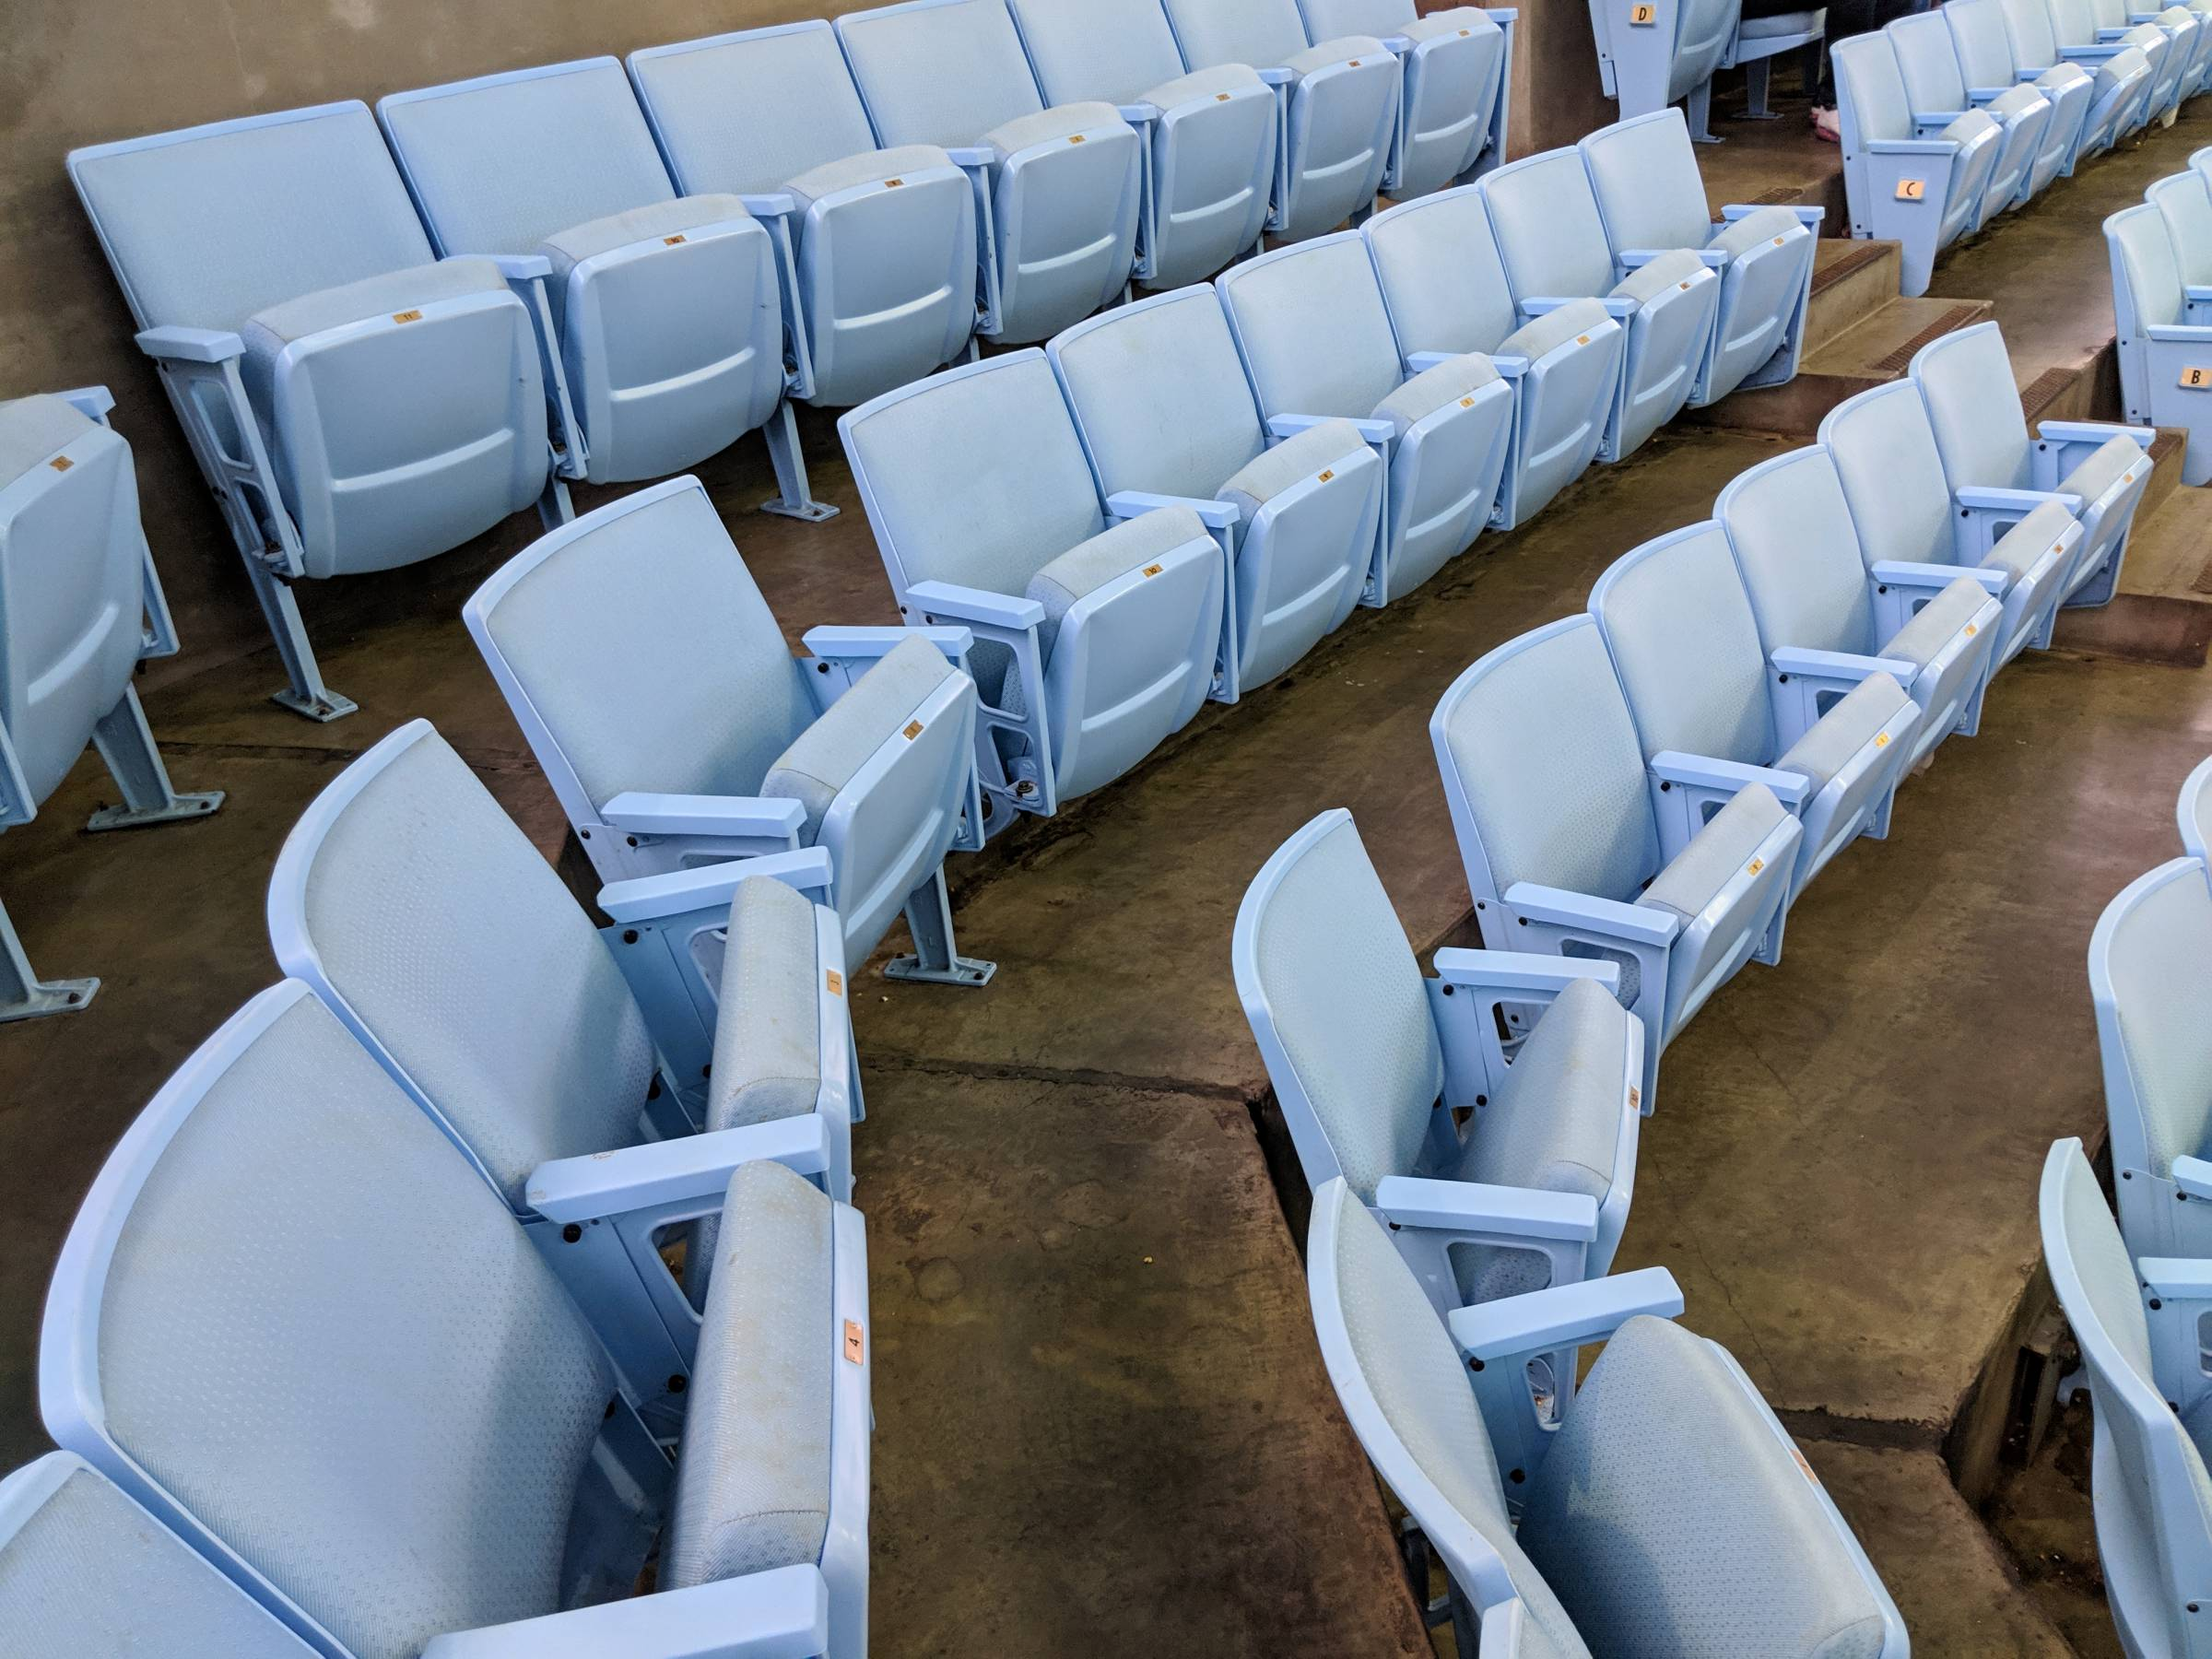 Padded Upper Level Seats Dean Smith Center